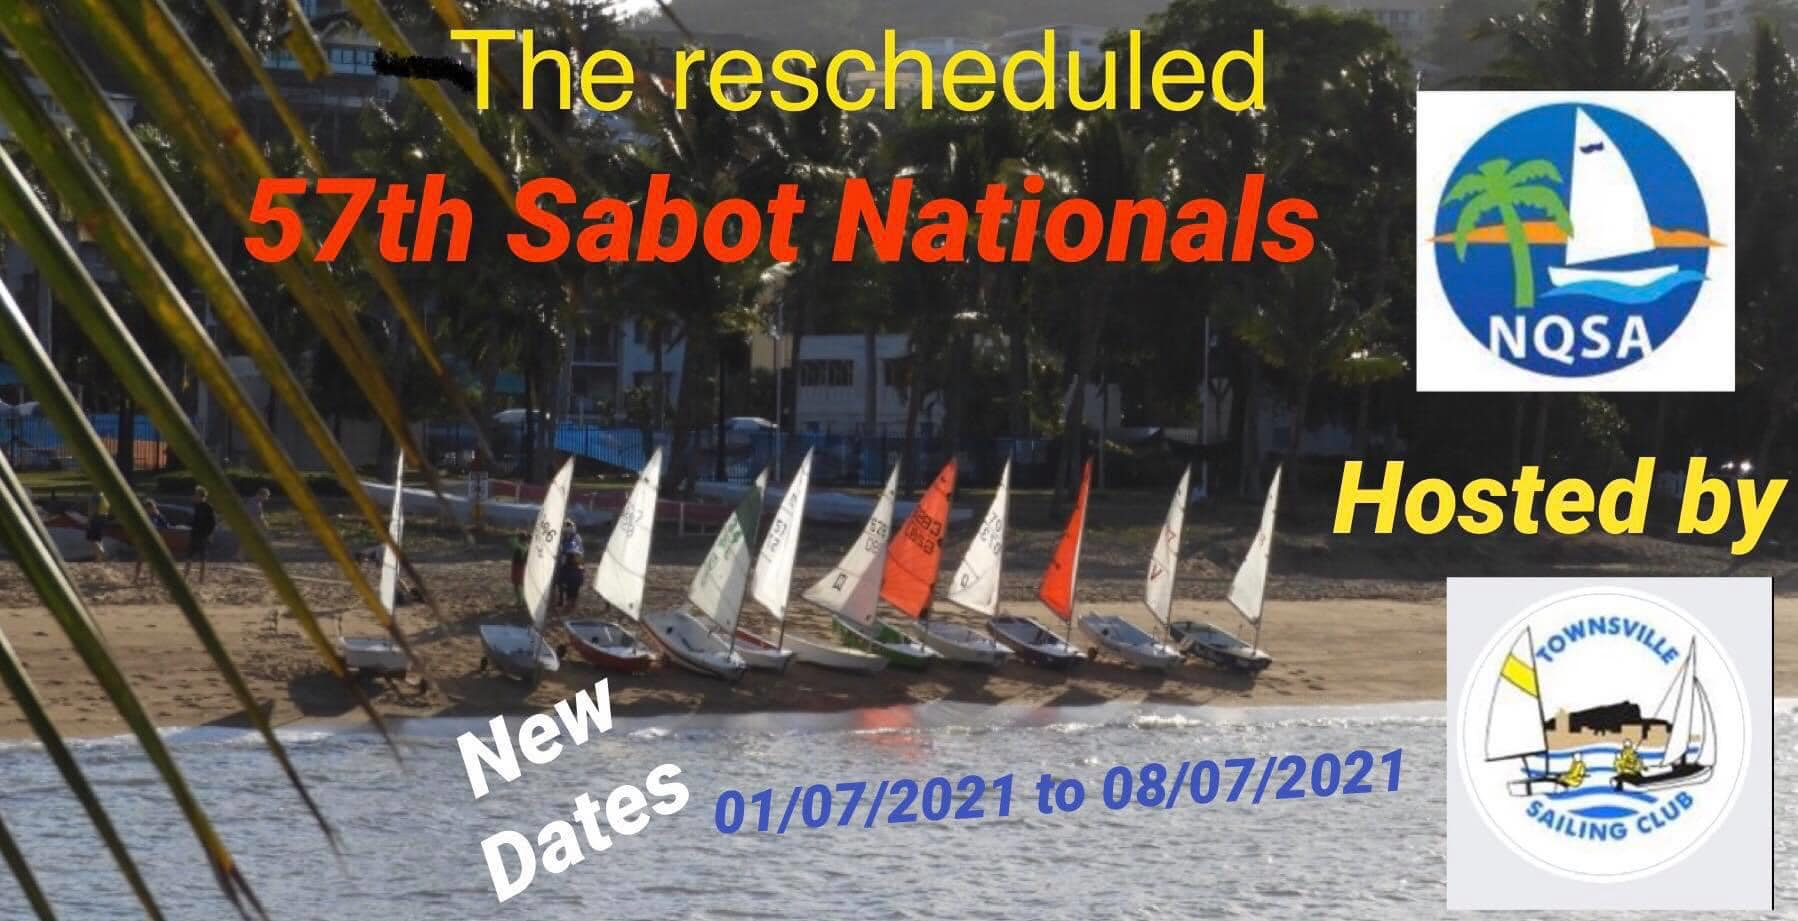 57th Sabot Nationals In Townsville